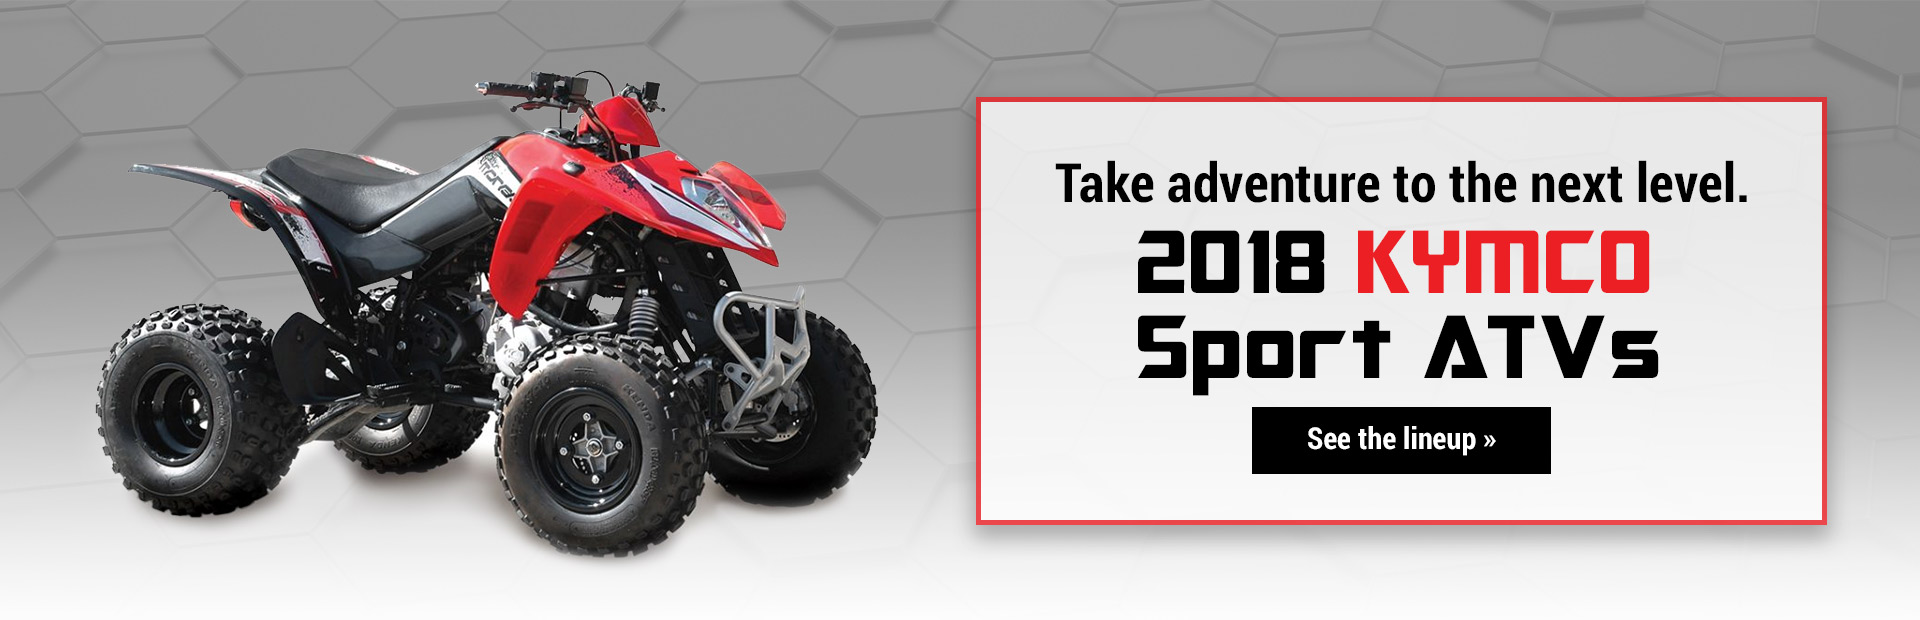 2018 KYMCO Sport ATVs: Click here to view the lineup.